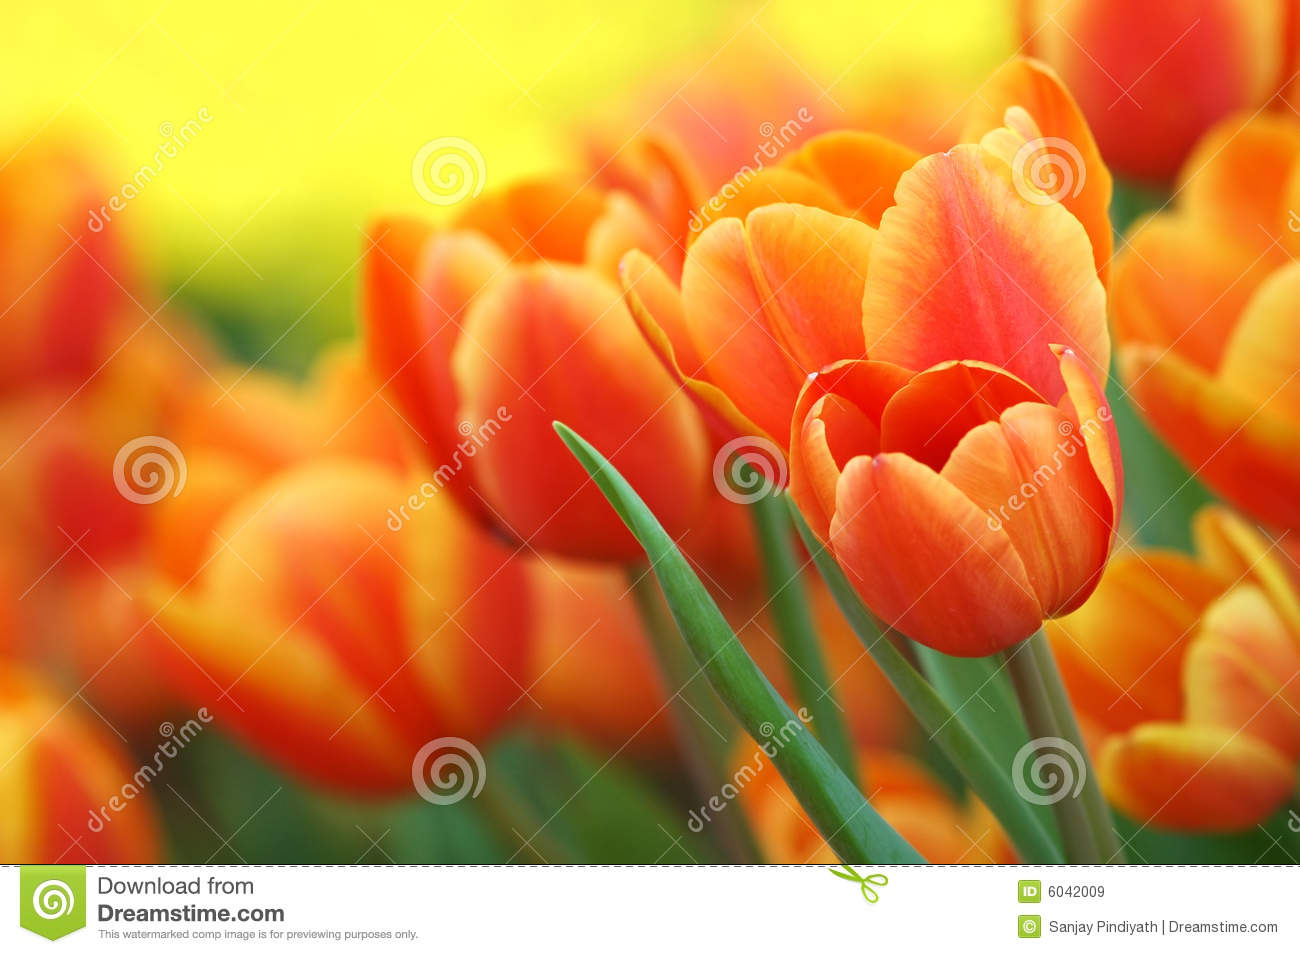 orange tulpen im garten stockbild bild von sonnenschein 6042009. Black Bedroom Furniture Sets. Home Design Ideas